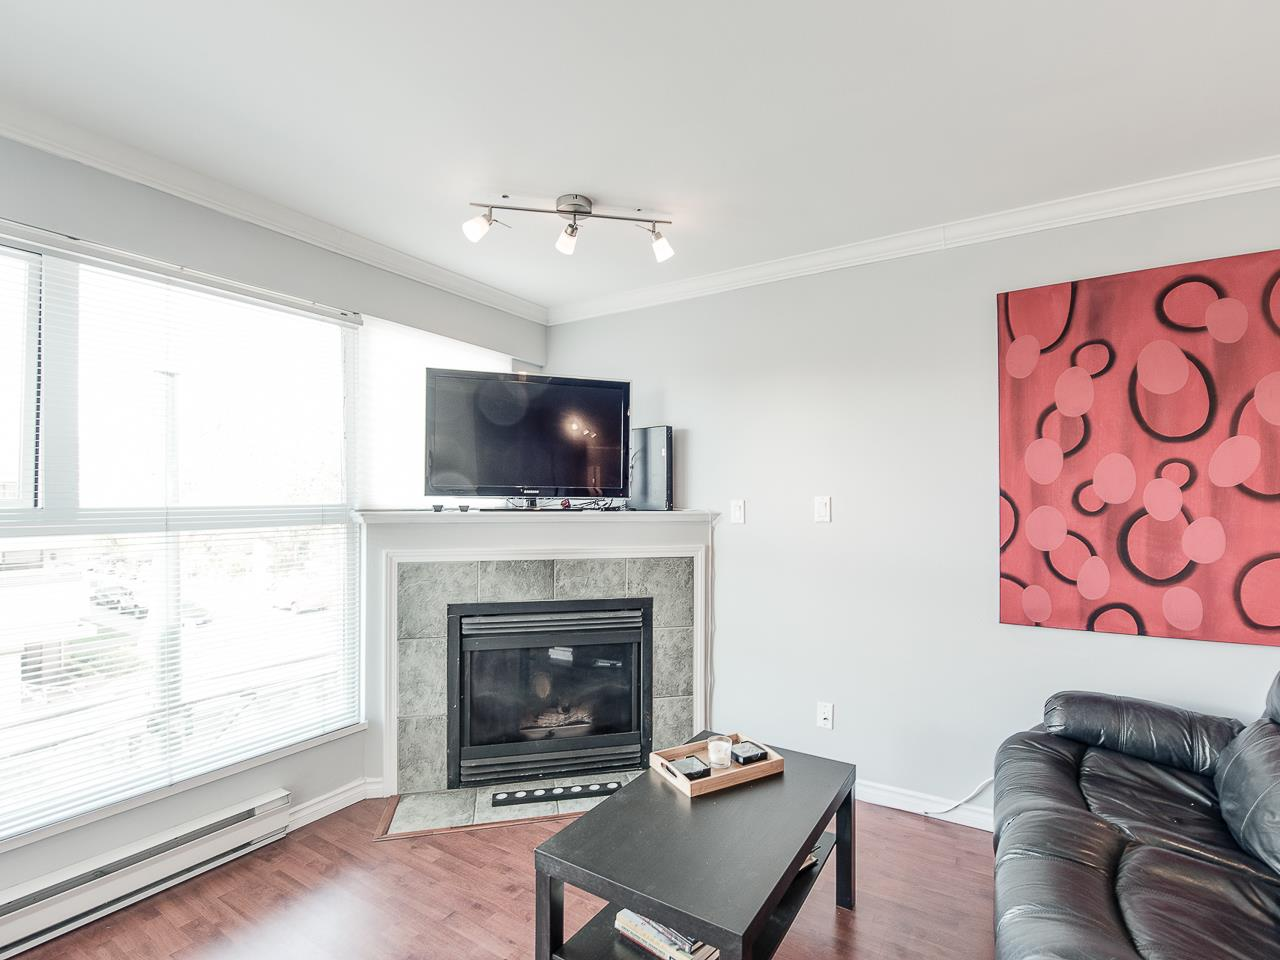 Photo 14: 304 2025 STEPHENS STREET in Vancouver: Kitsilano Condo for sale (Vancouver West)  : MLS® # R2158946